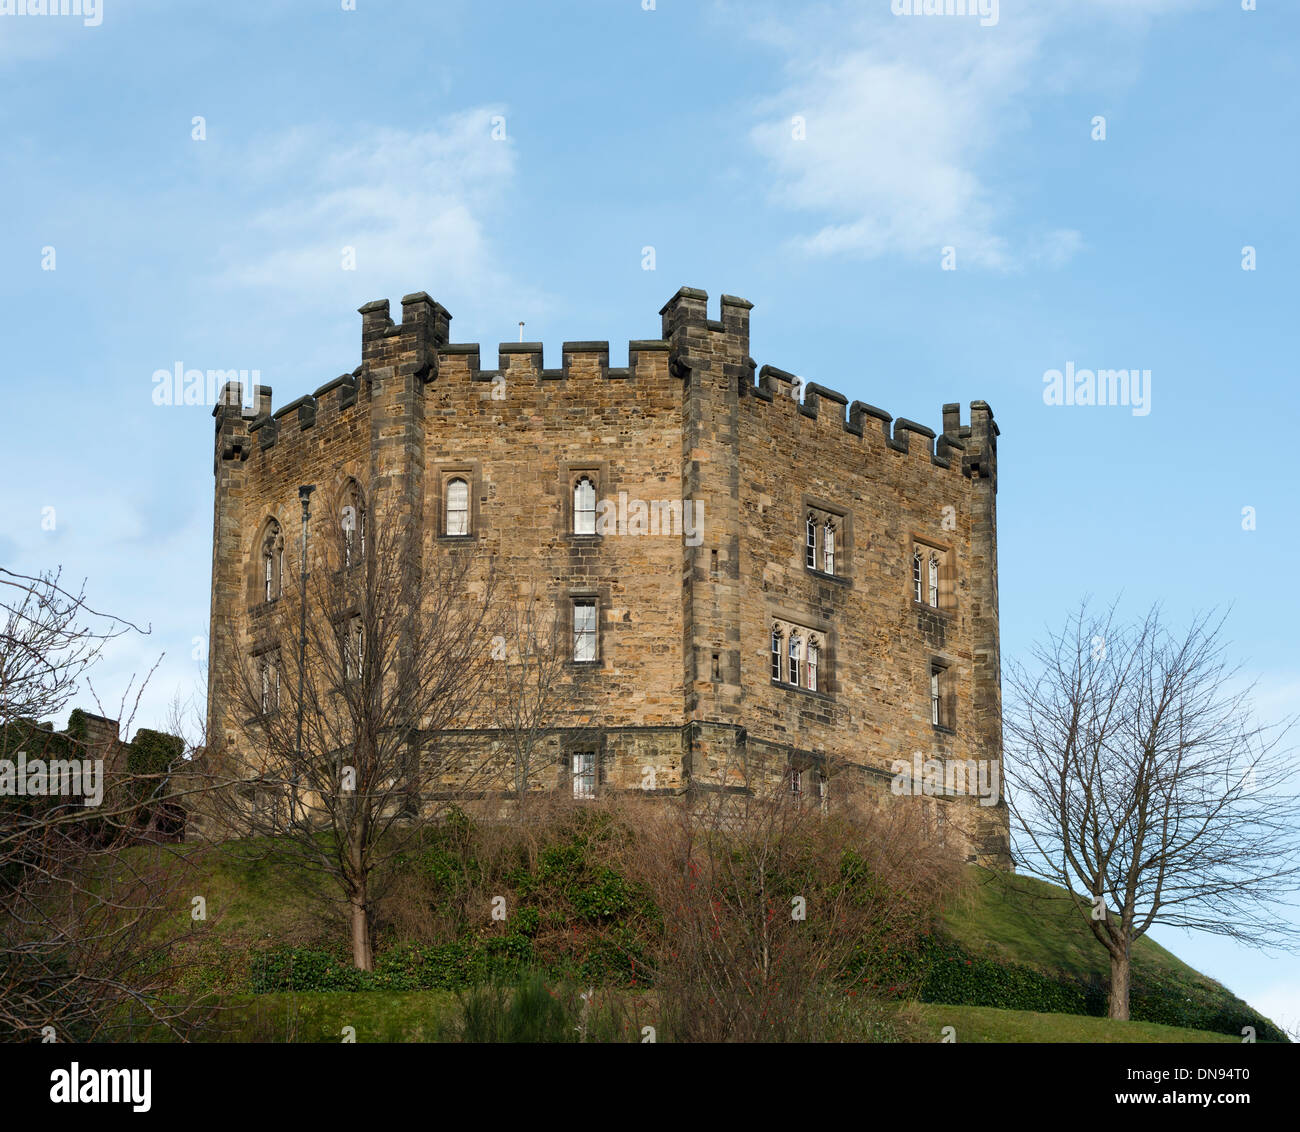 Durham Castle - Stock Image